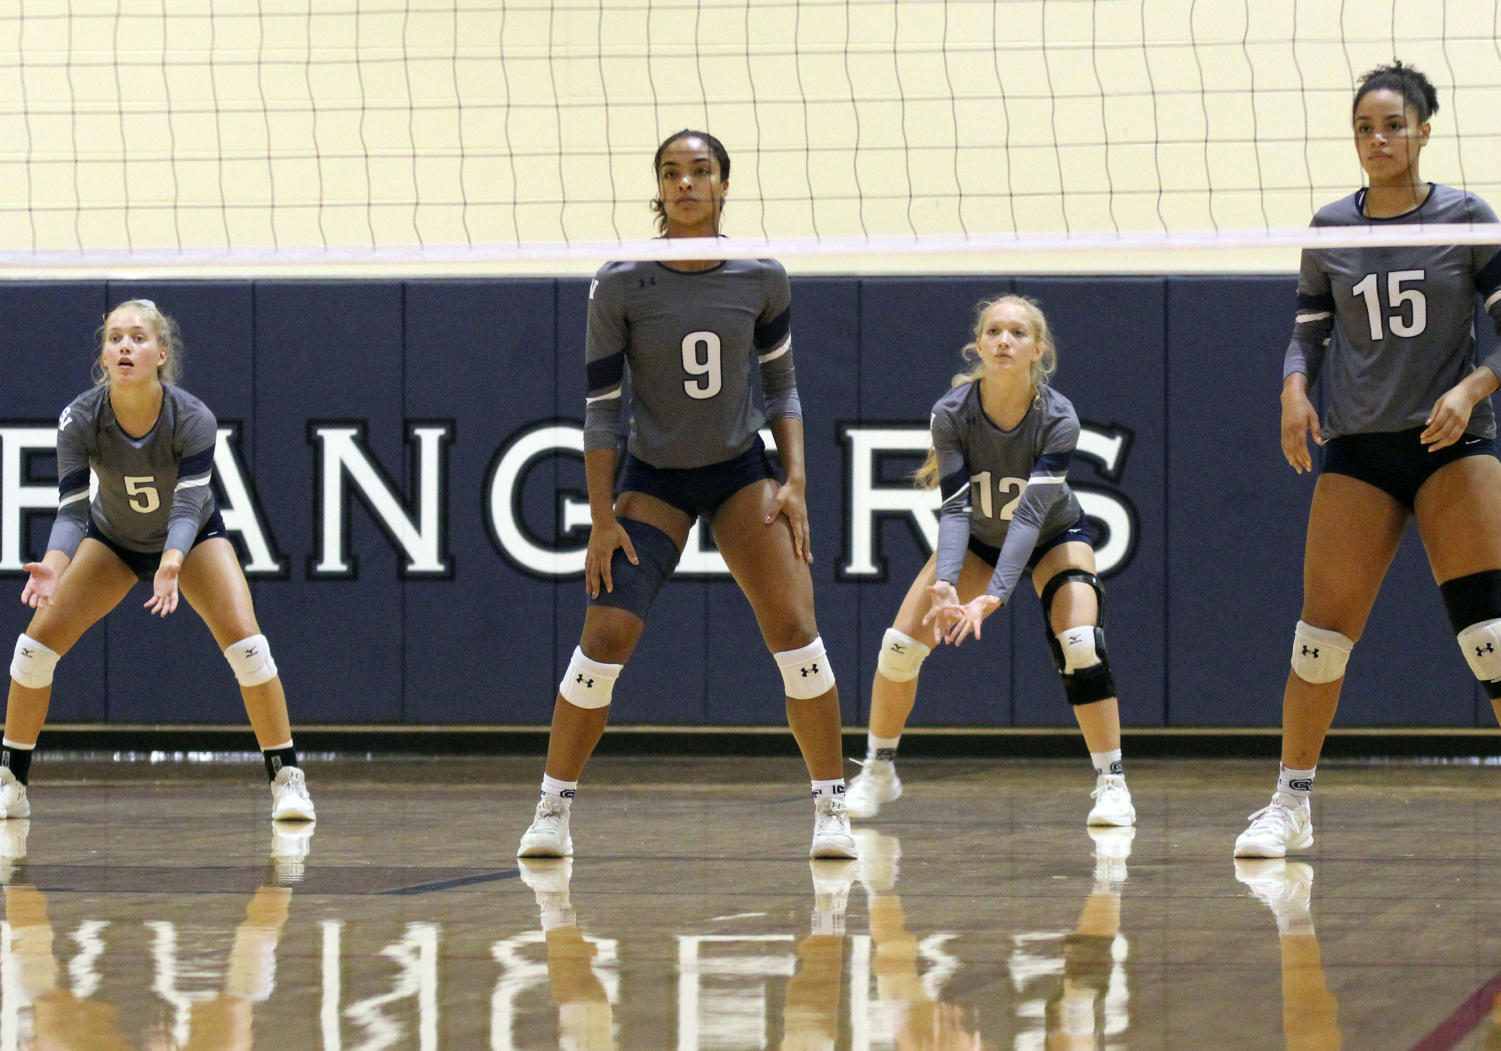 The team looks on to receive the opponents serve as they faced off against San Antonio Jefferson on Sep. 24